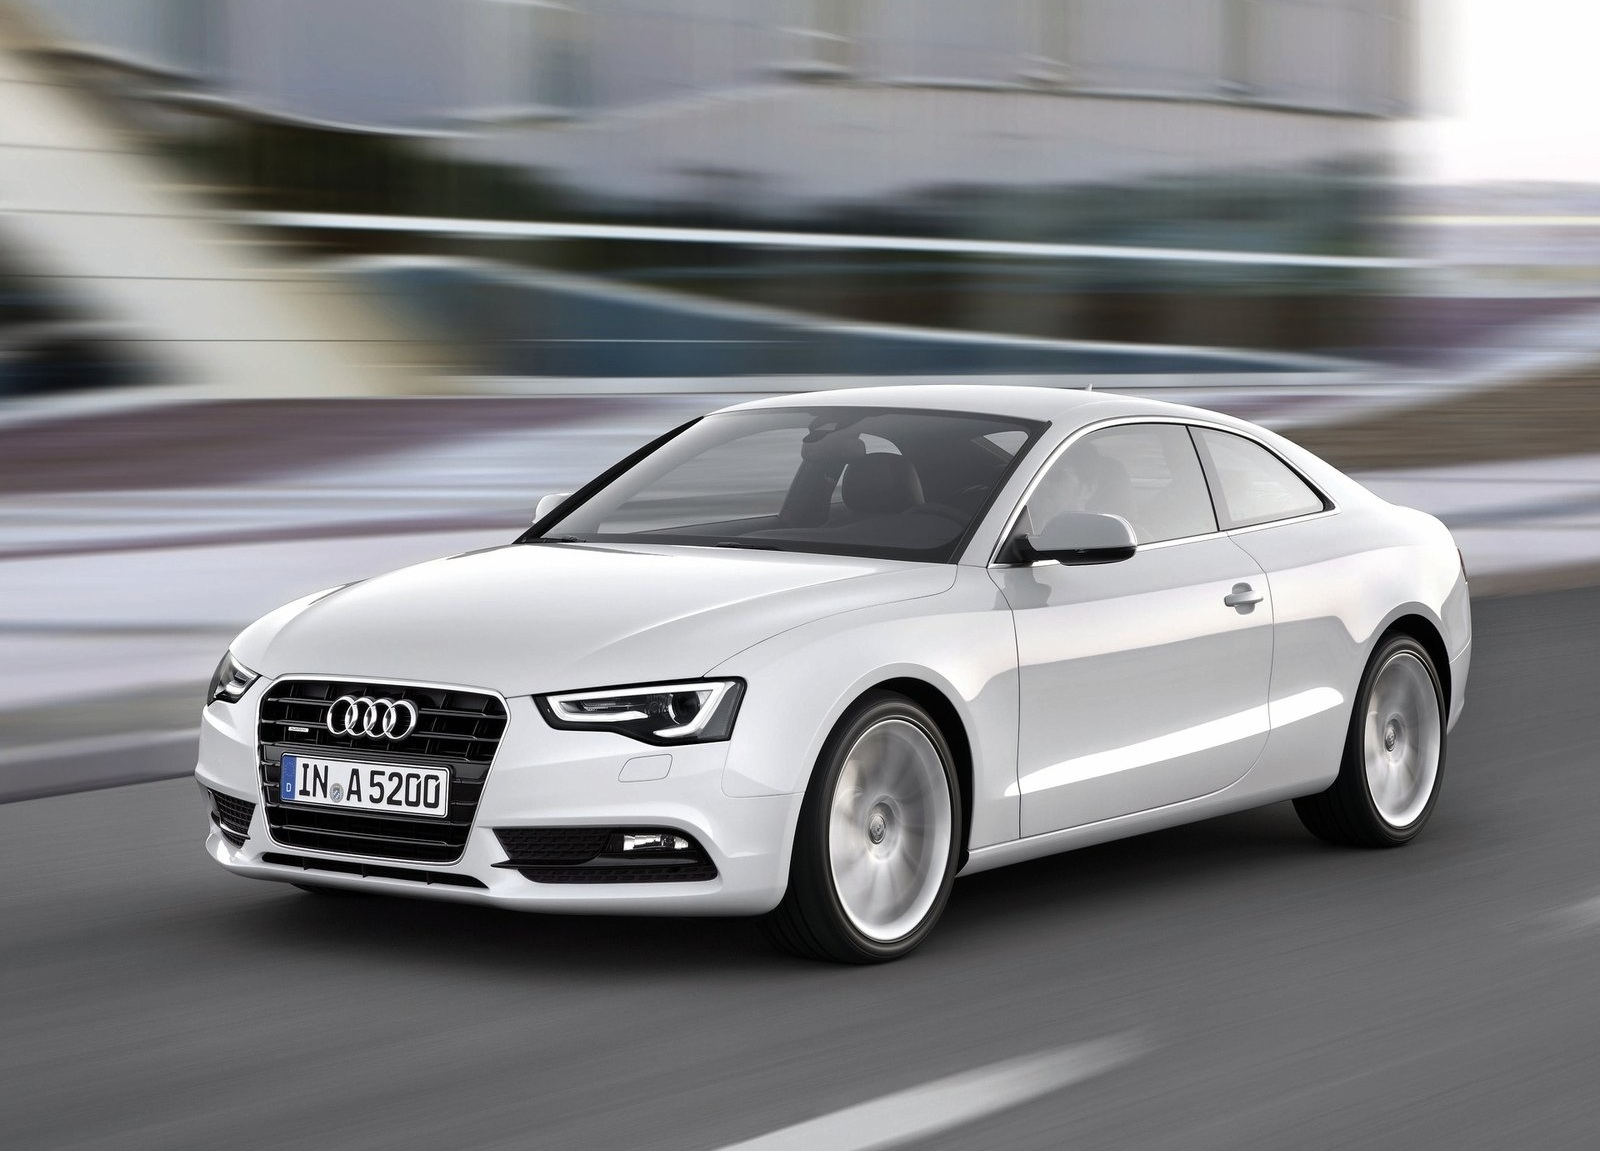 2012-Audi-A5-Coupe-Front-Angle-6